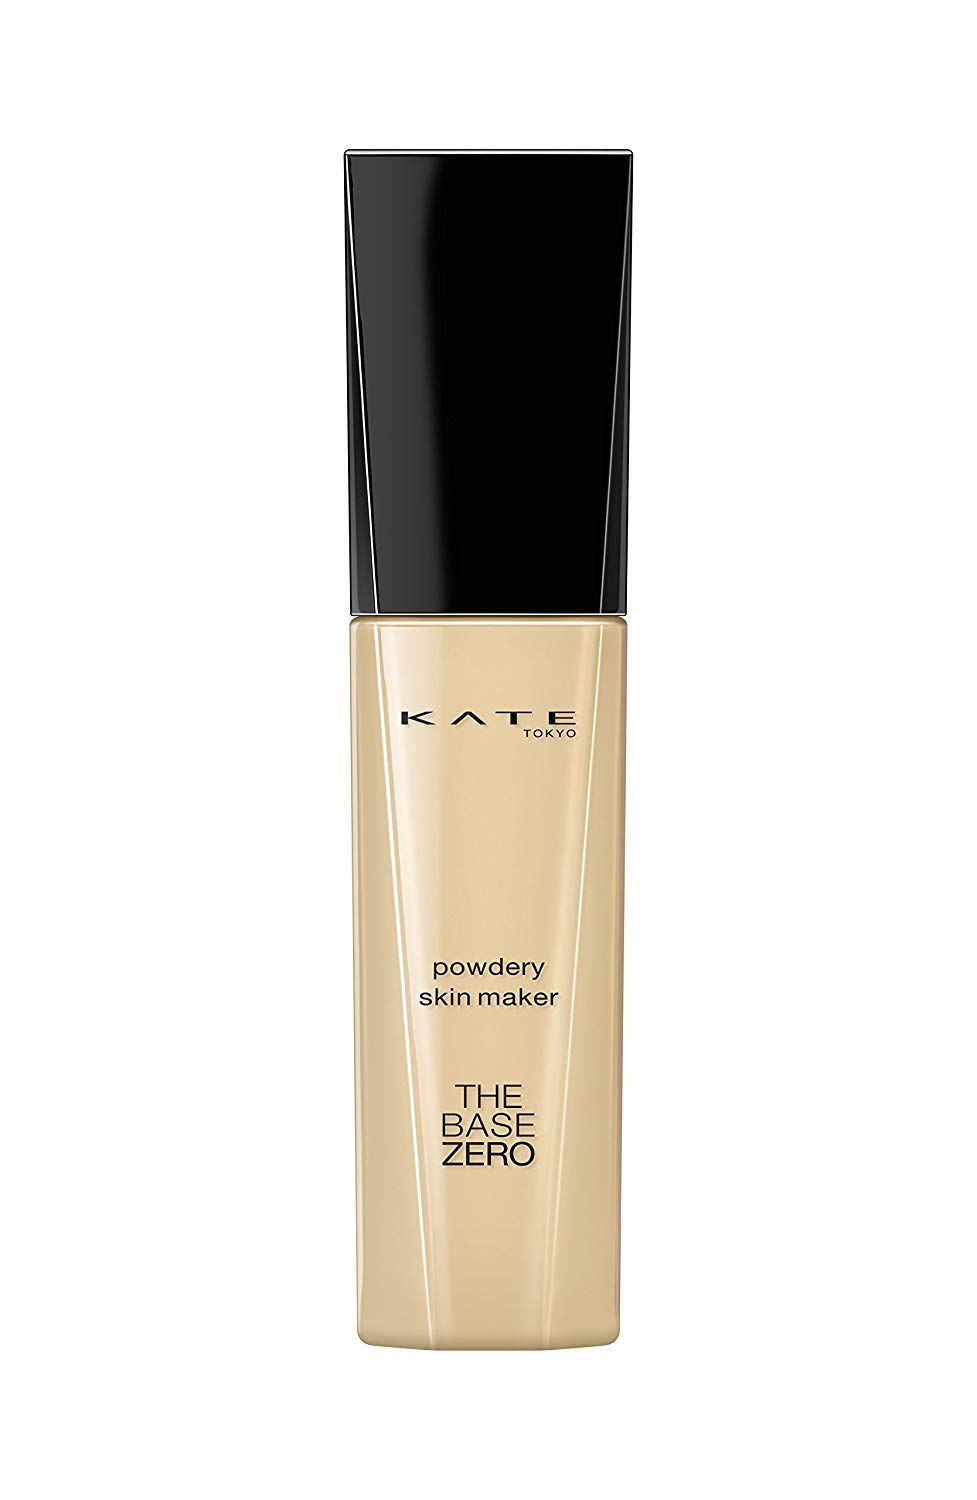 KATE TOKYO Powdery Skin Maker Foundation SPF15 PA++ 30ml